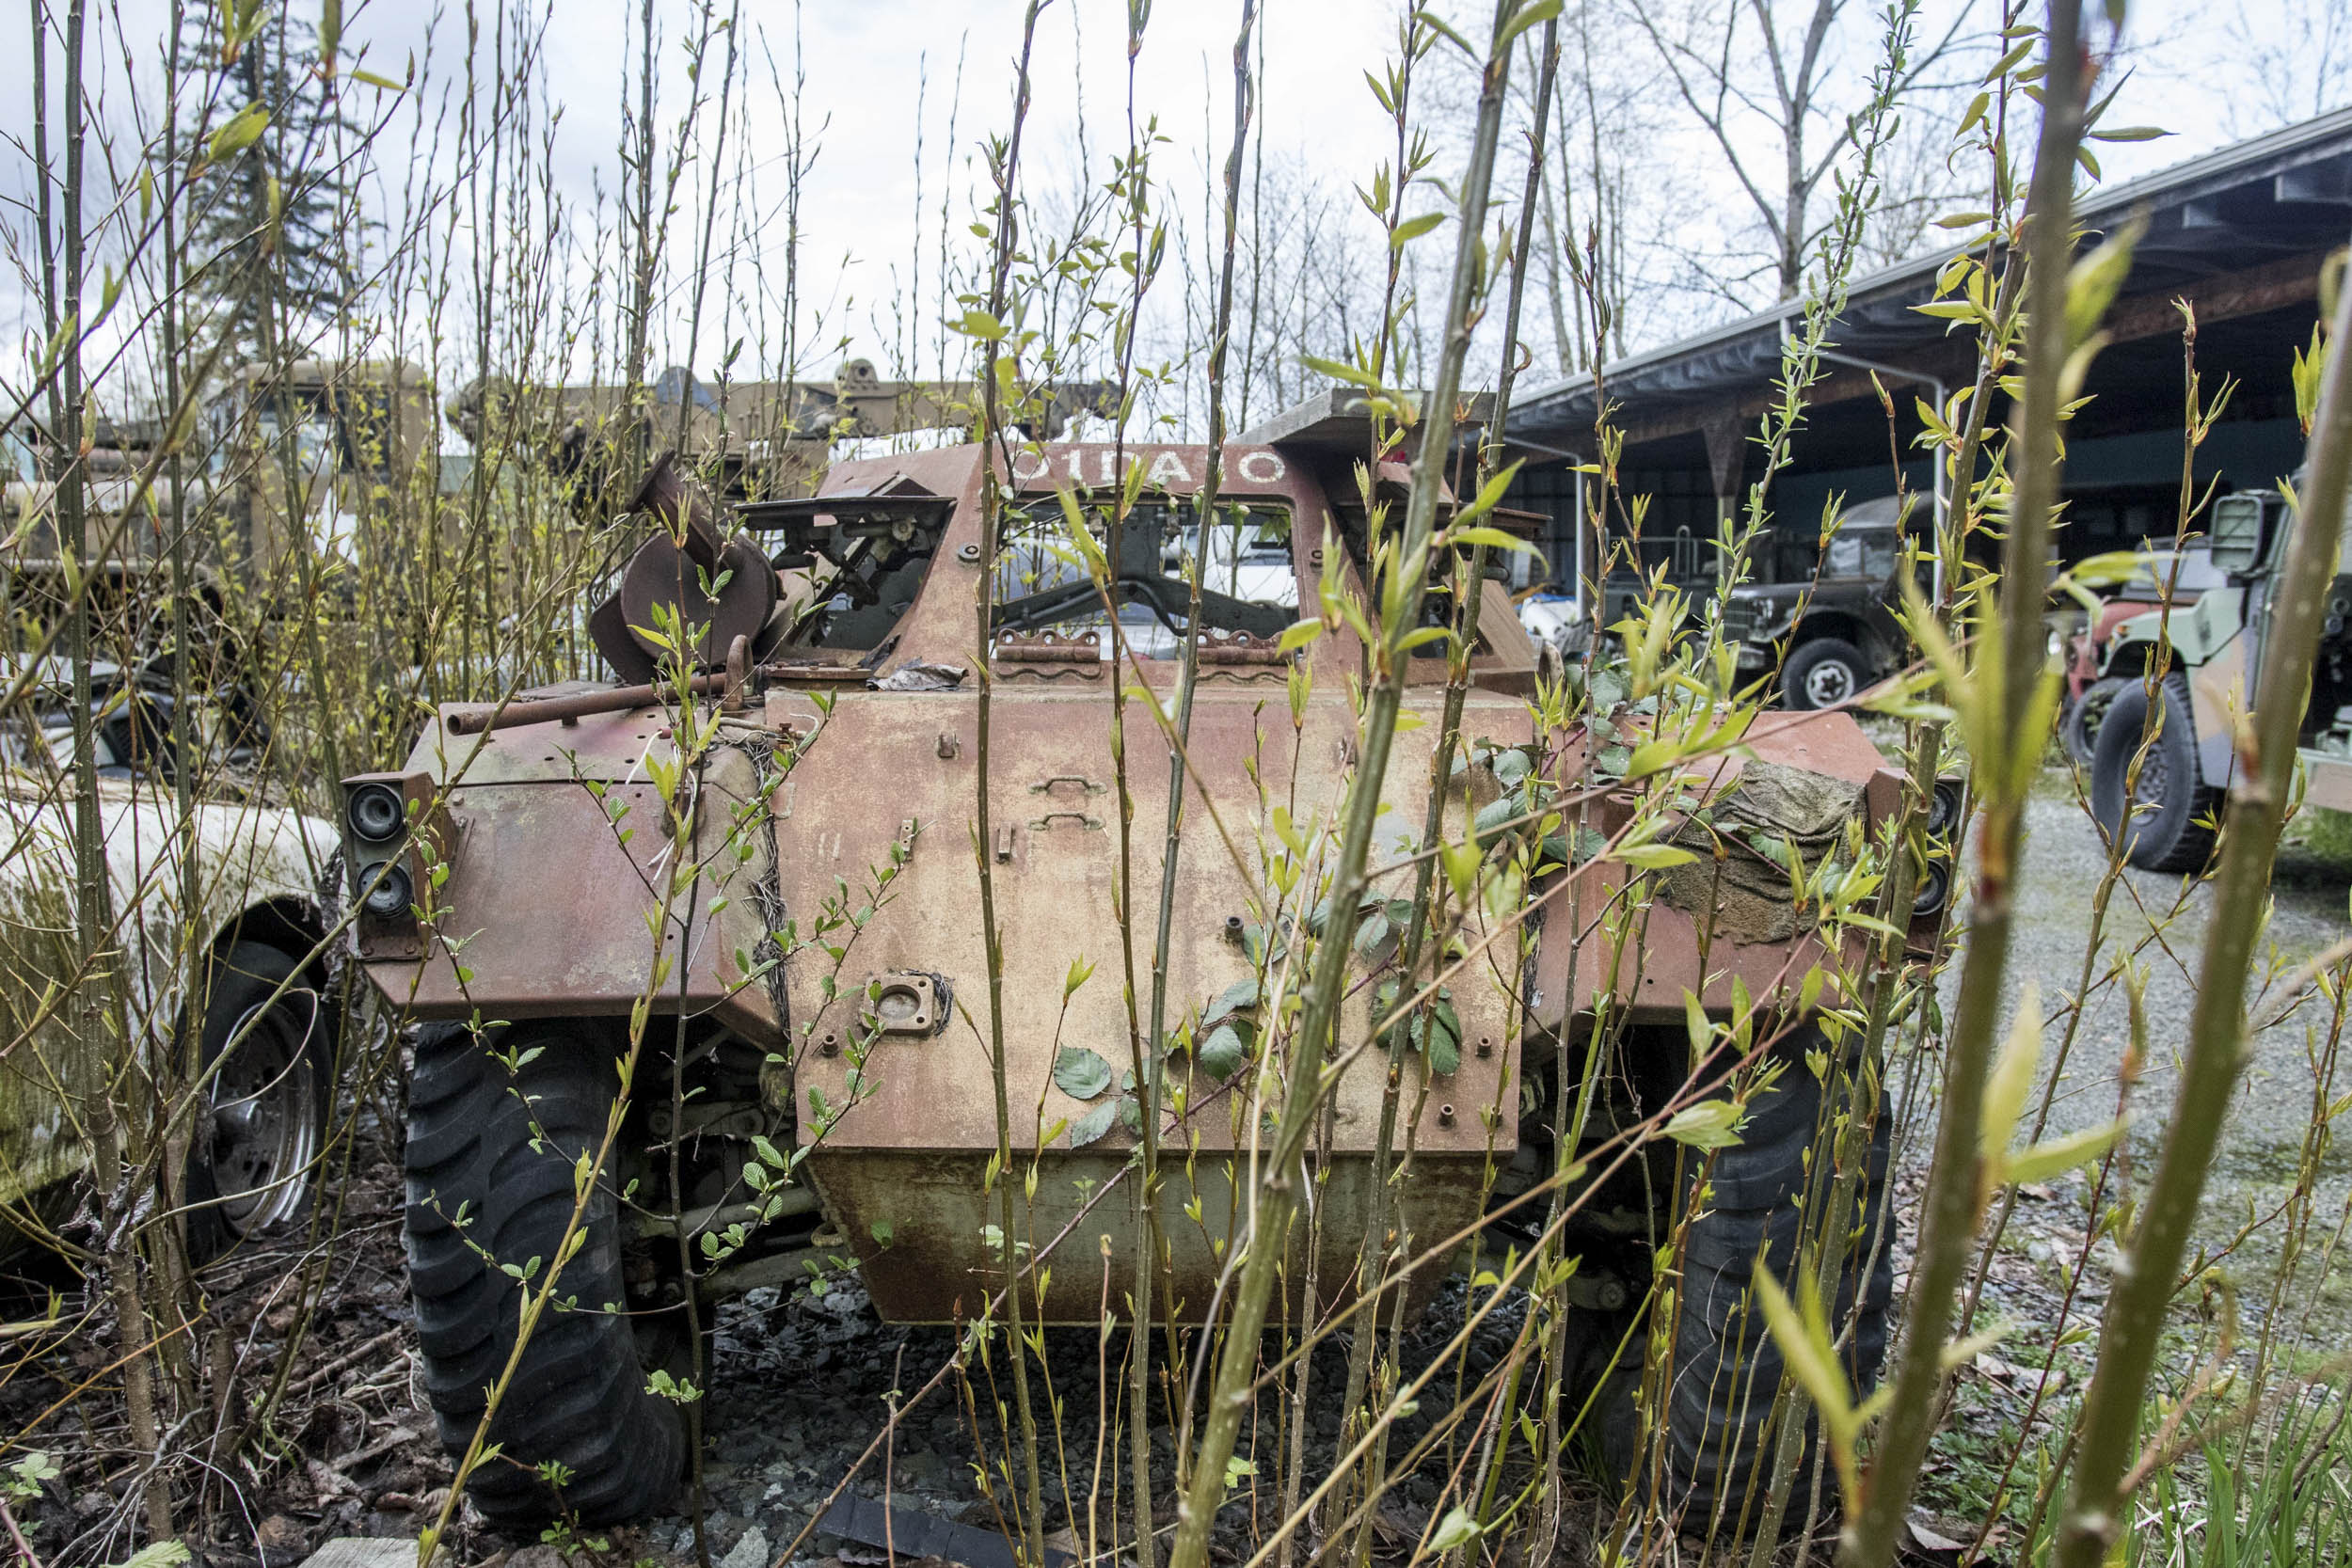 Surrounded by undergrowth, an unidentified armored car (probably a Daimler Ferret) awaits restoration.